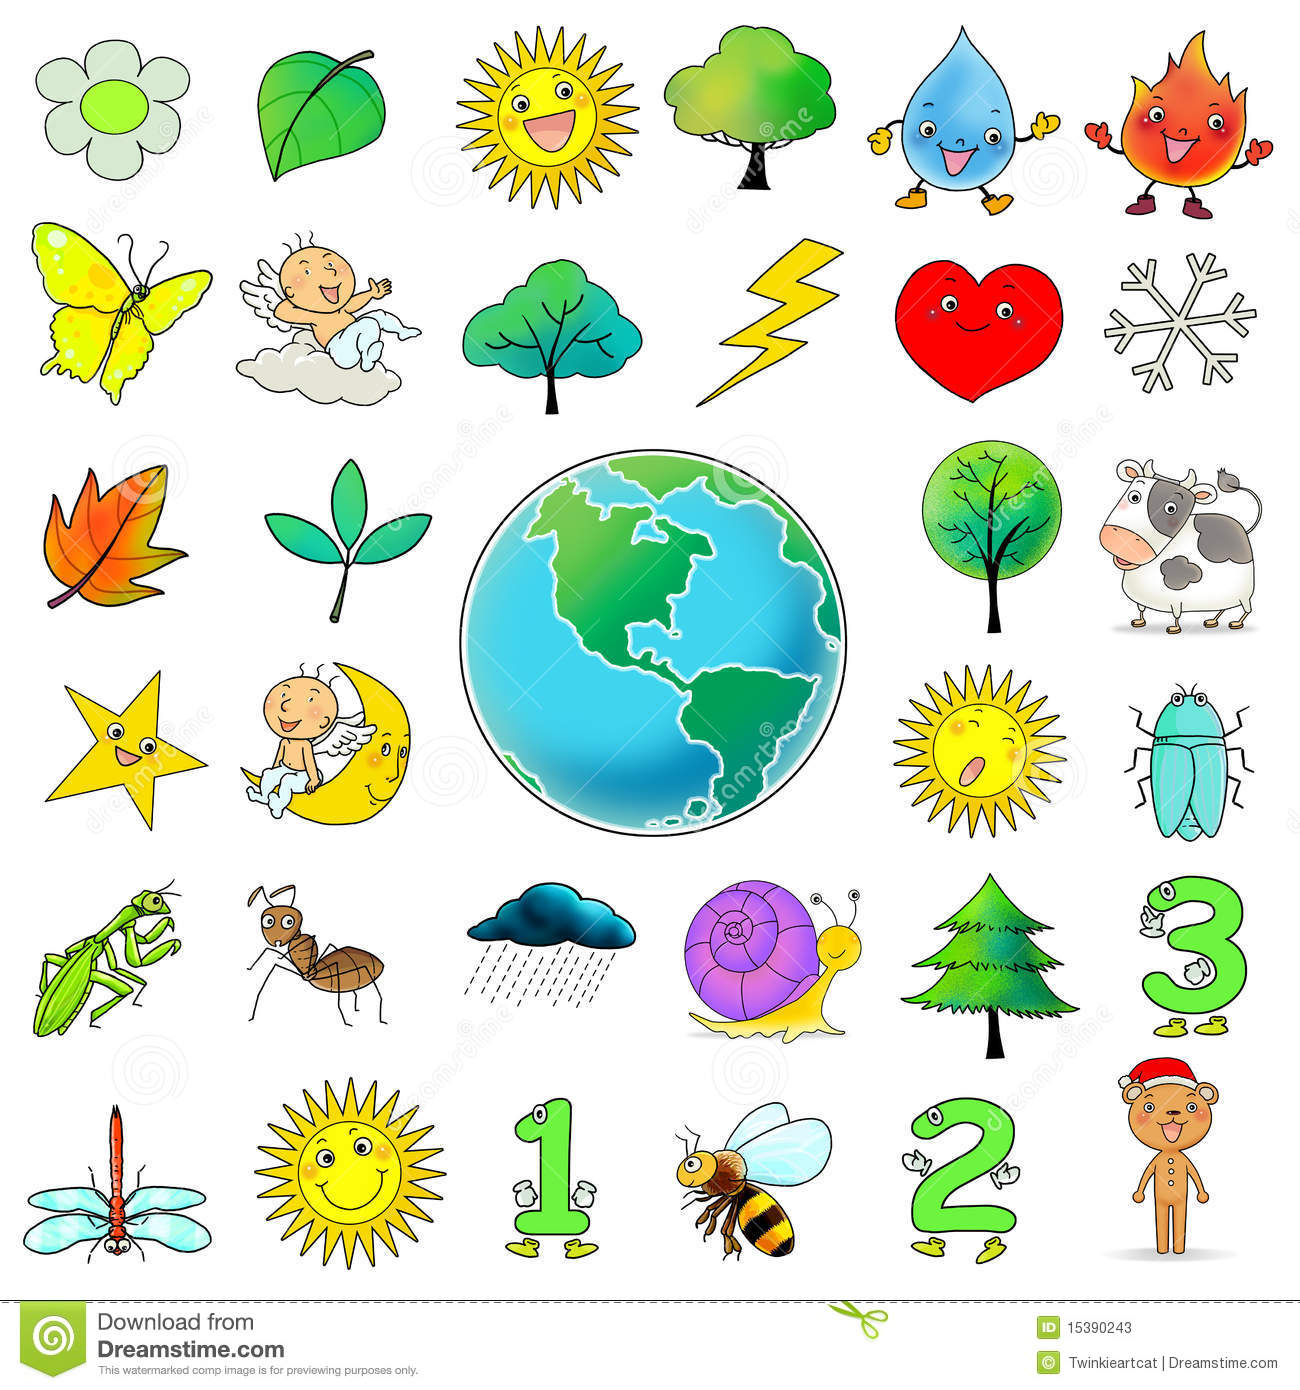 33 cartoon icon clip art collection